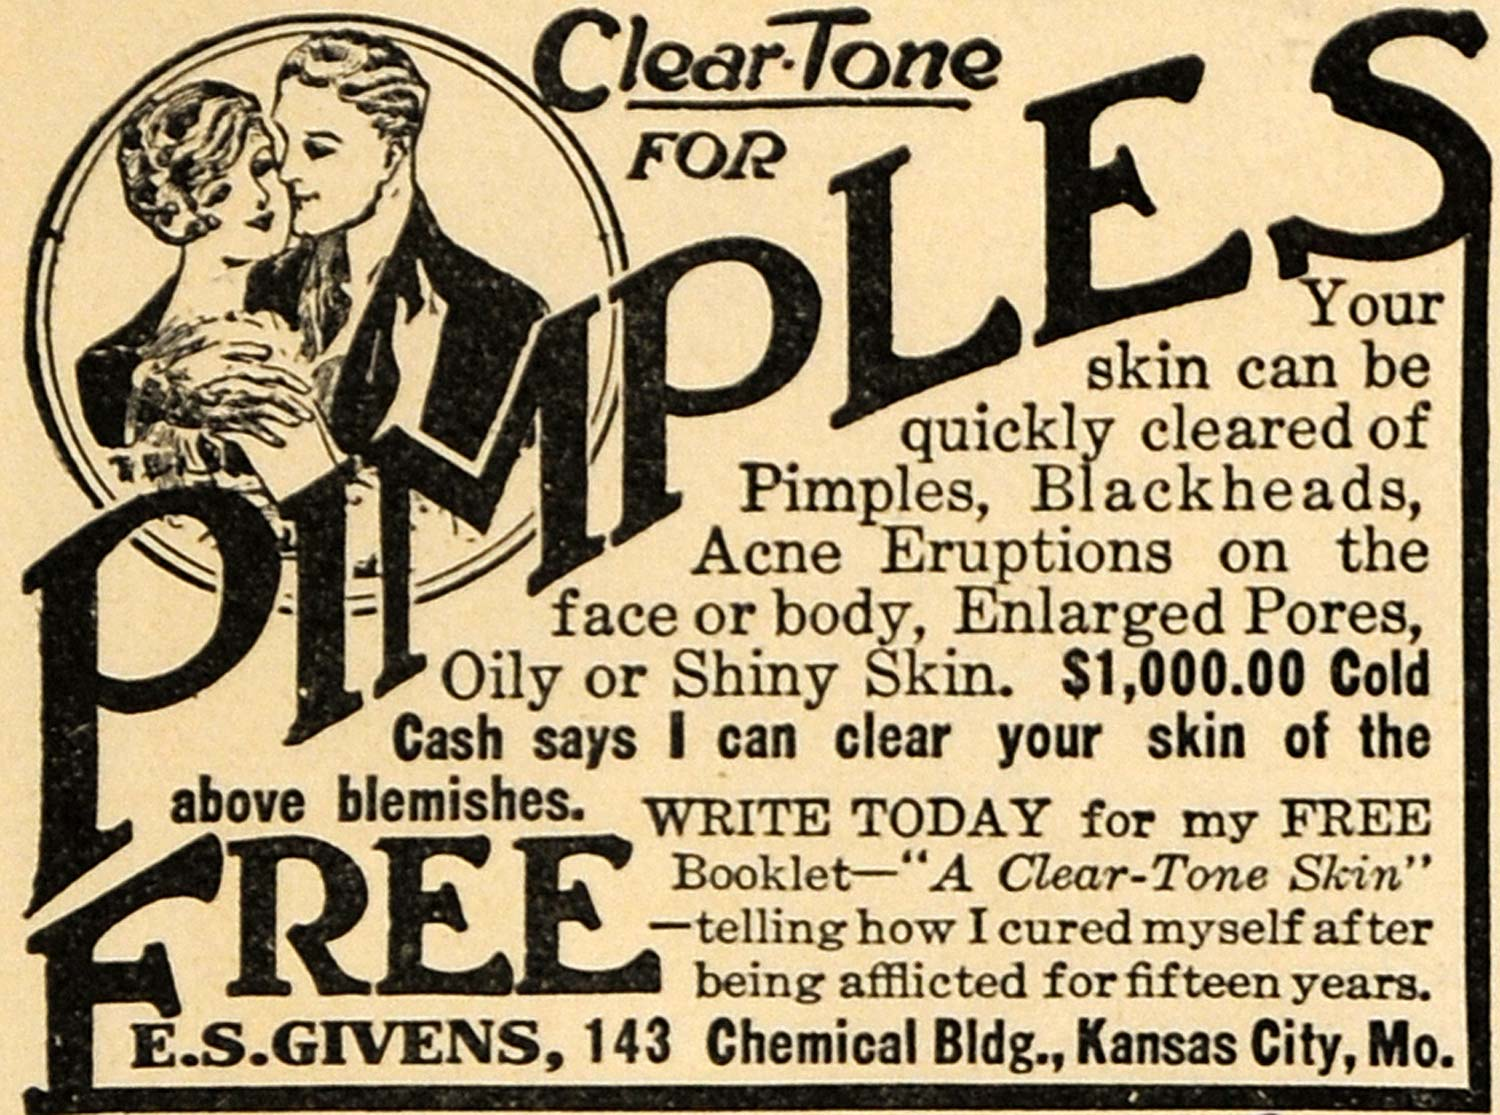 1923 Ad E. S. Givens Pimple Clear Complexion Formula - ORIGINAL ADVERTISING ILW1